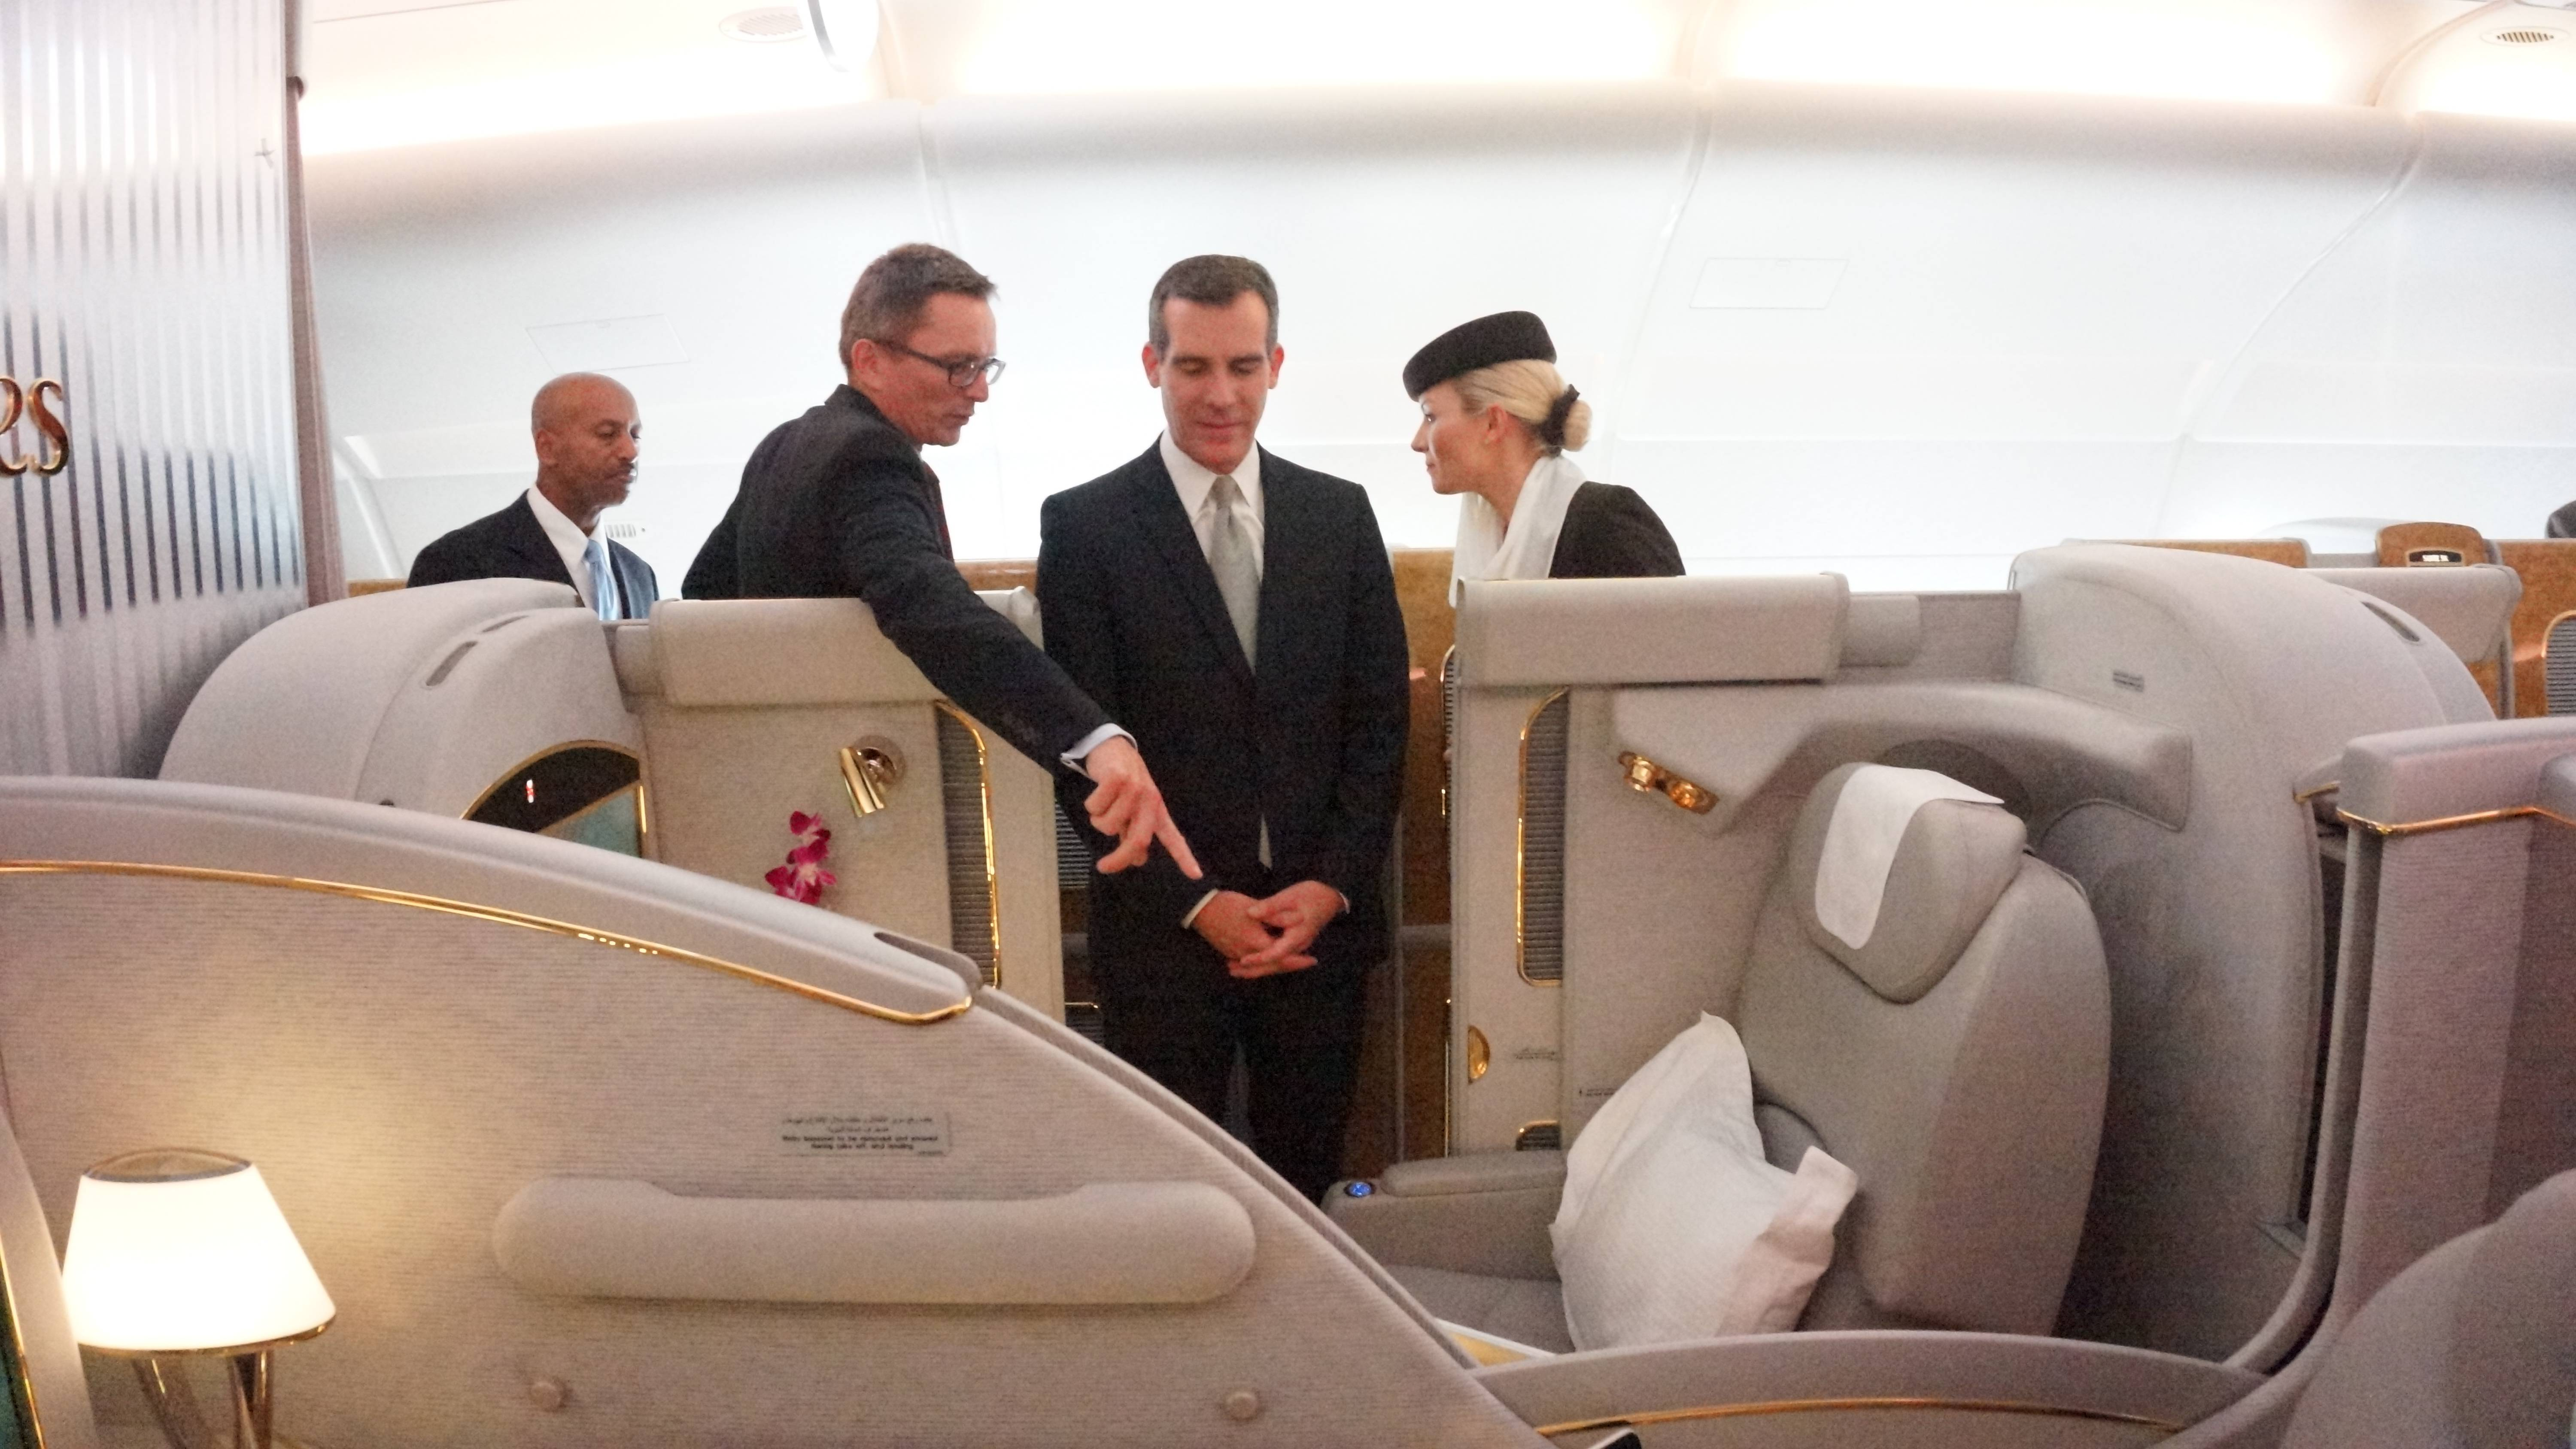 Los Angeles Mayor Eric Garcetti Views the First Class Private Suite On-Board the Emirates' A380 in Los Angeles